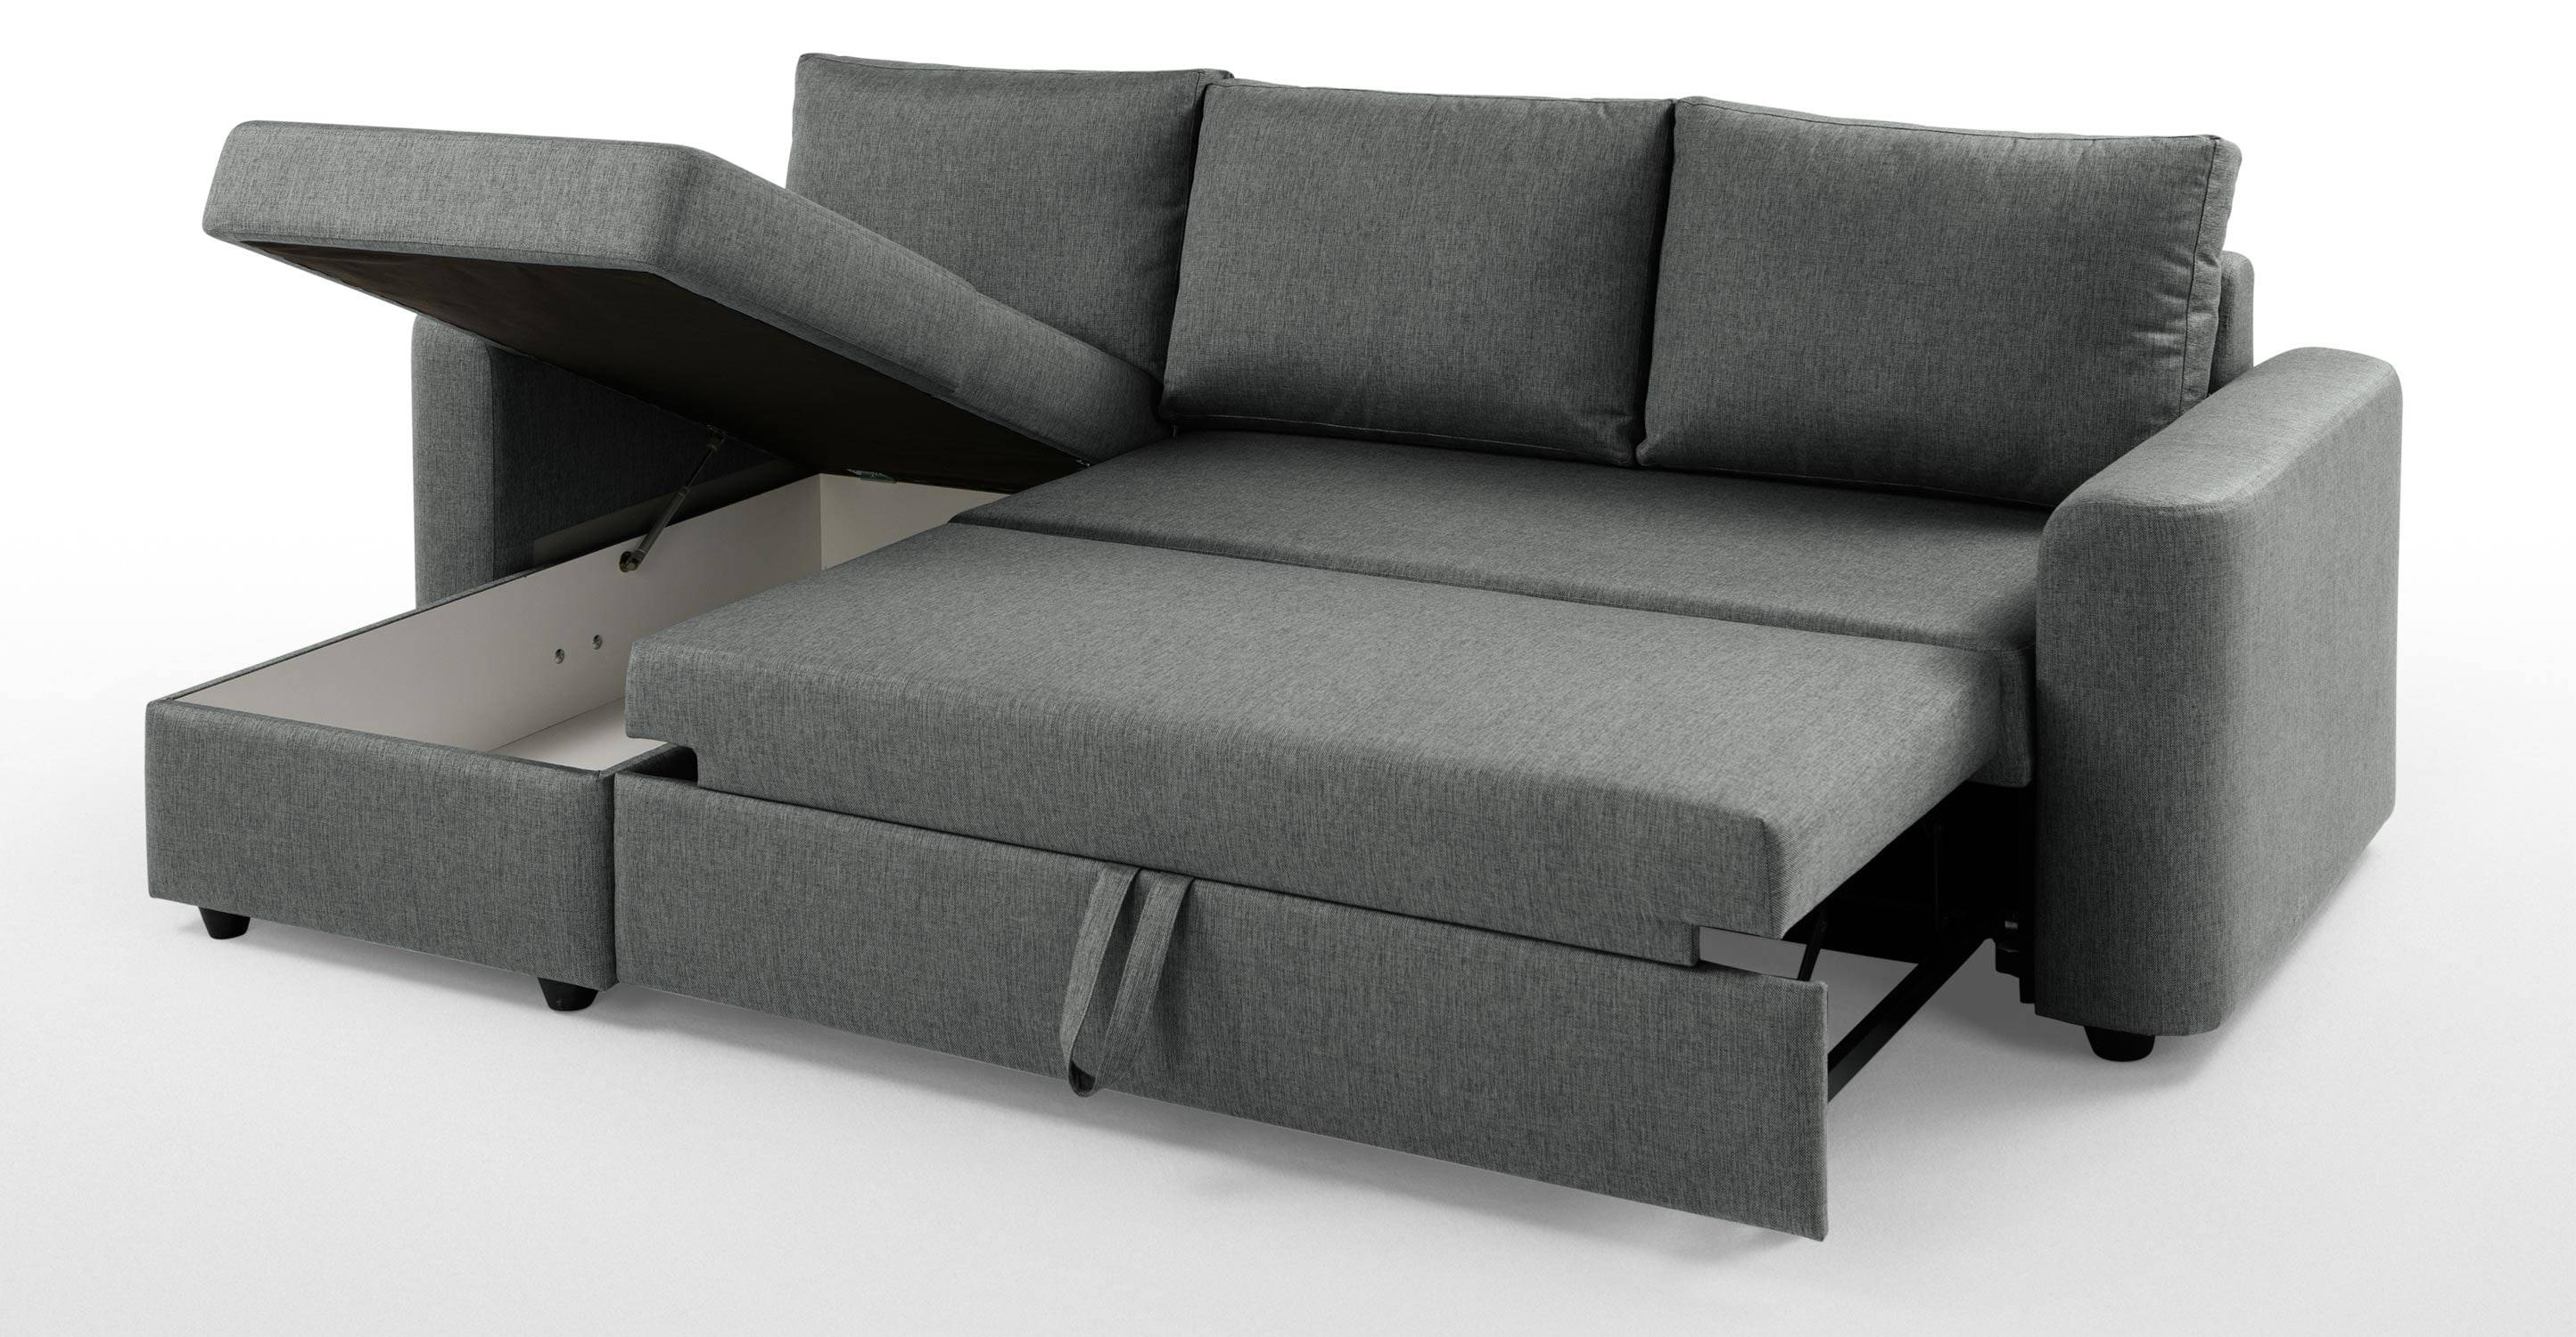 Furniture: Vivacious Chaise Sofa Bed With Softly Bed Foam For with Chaise Sofa Beds With Storage (Image 5 of 15)